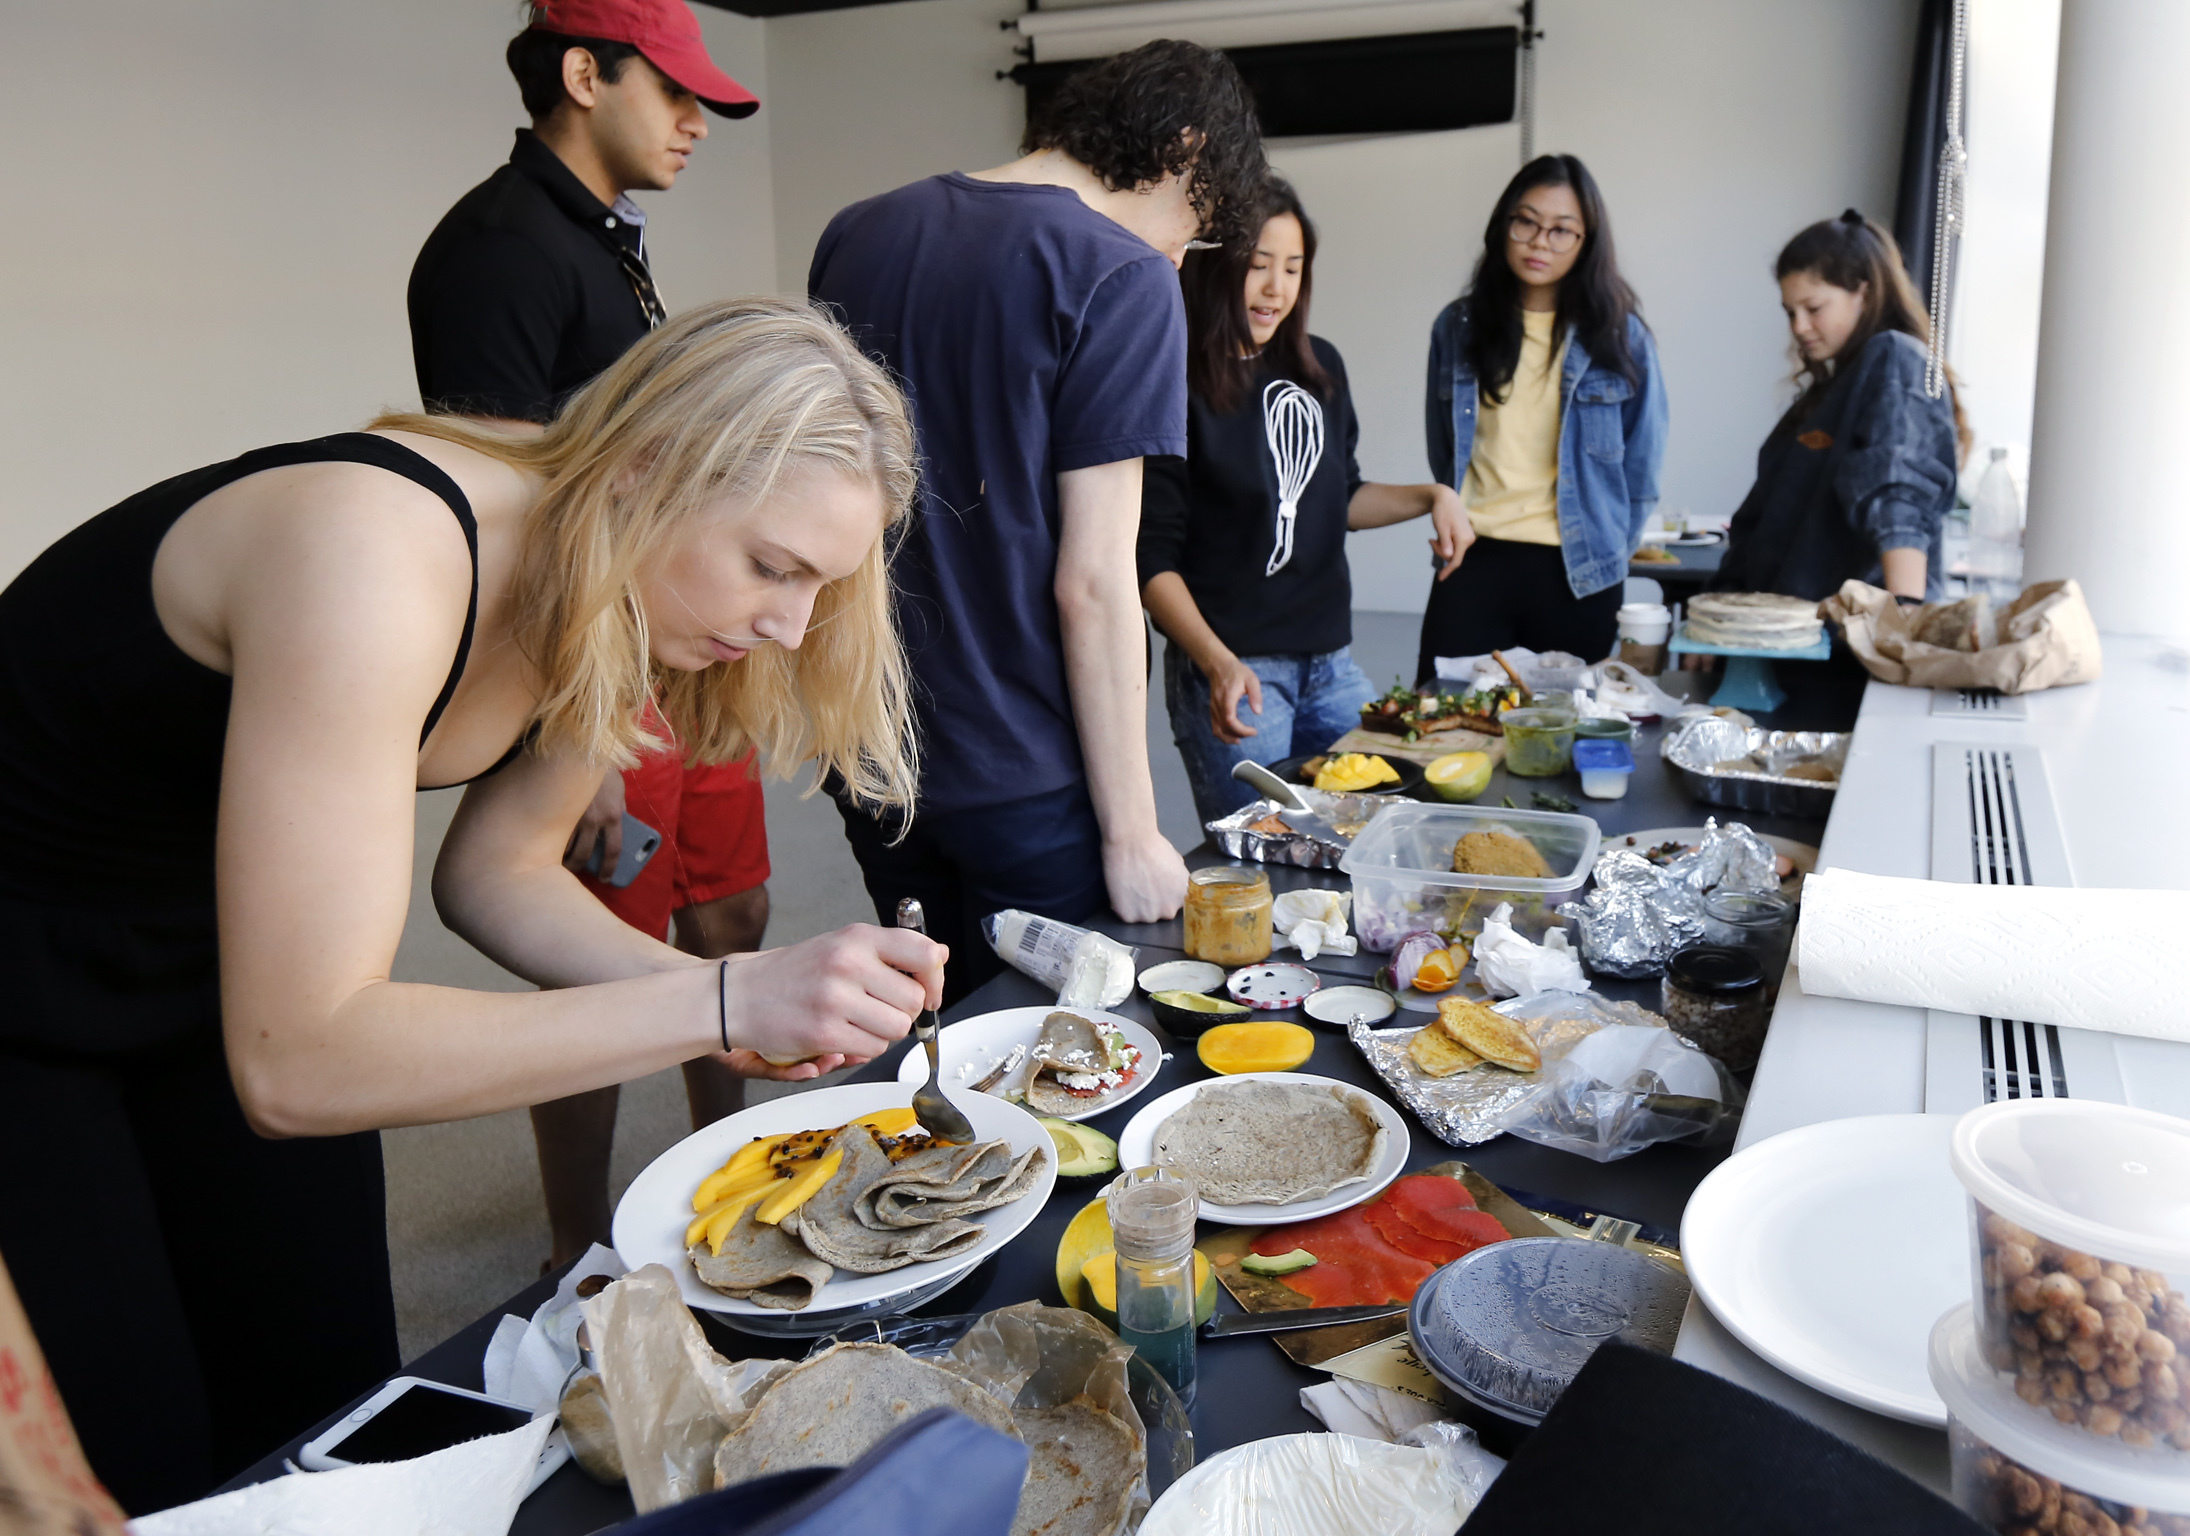 Juliana Sandford (left) and other Penn Appetit members prepare, photograph and eat the food during a photoshoot for an upcoming cookbook at the University of Pennsylvania Fine Arts building.